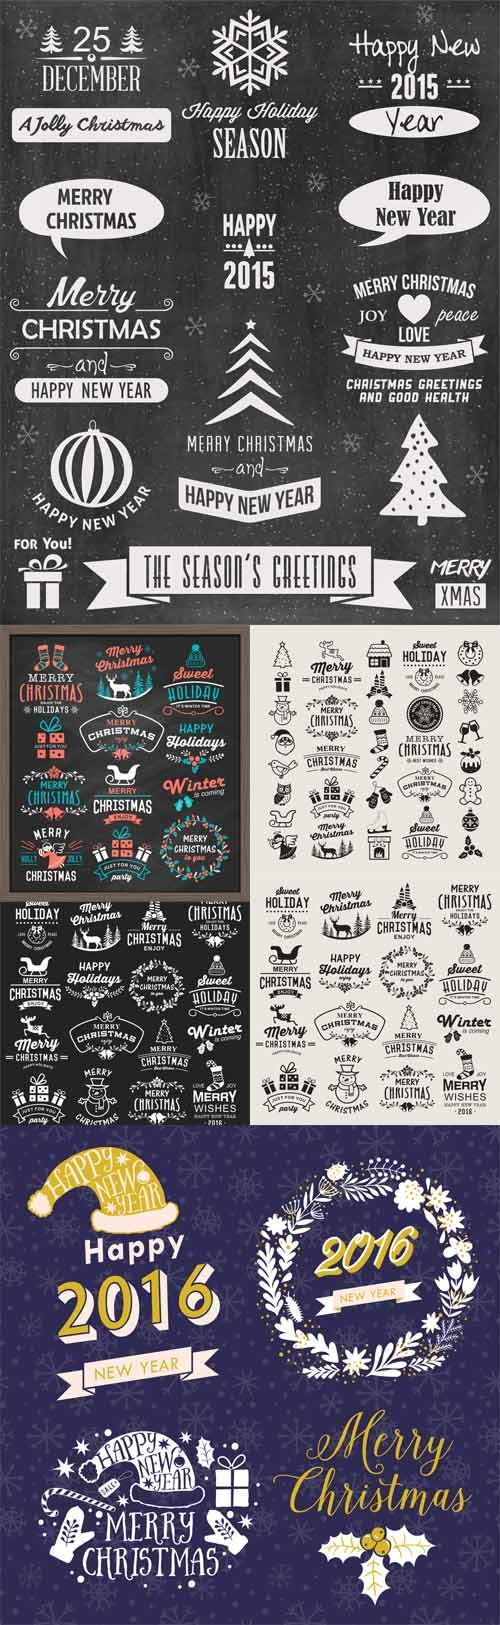 Vector Christmas design elements, logos, badges, labels, icons decoration and object set